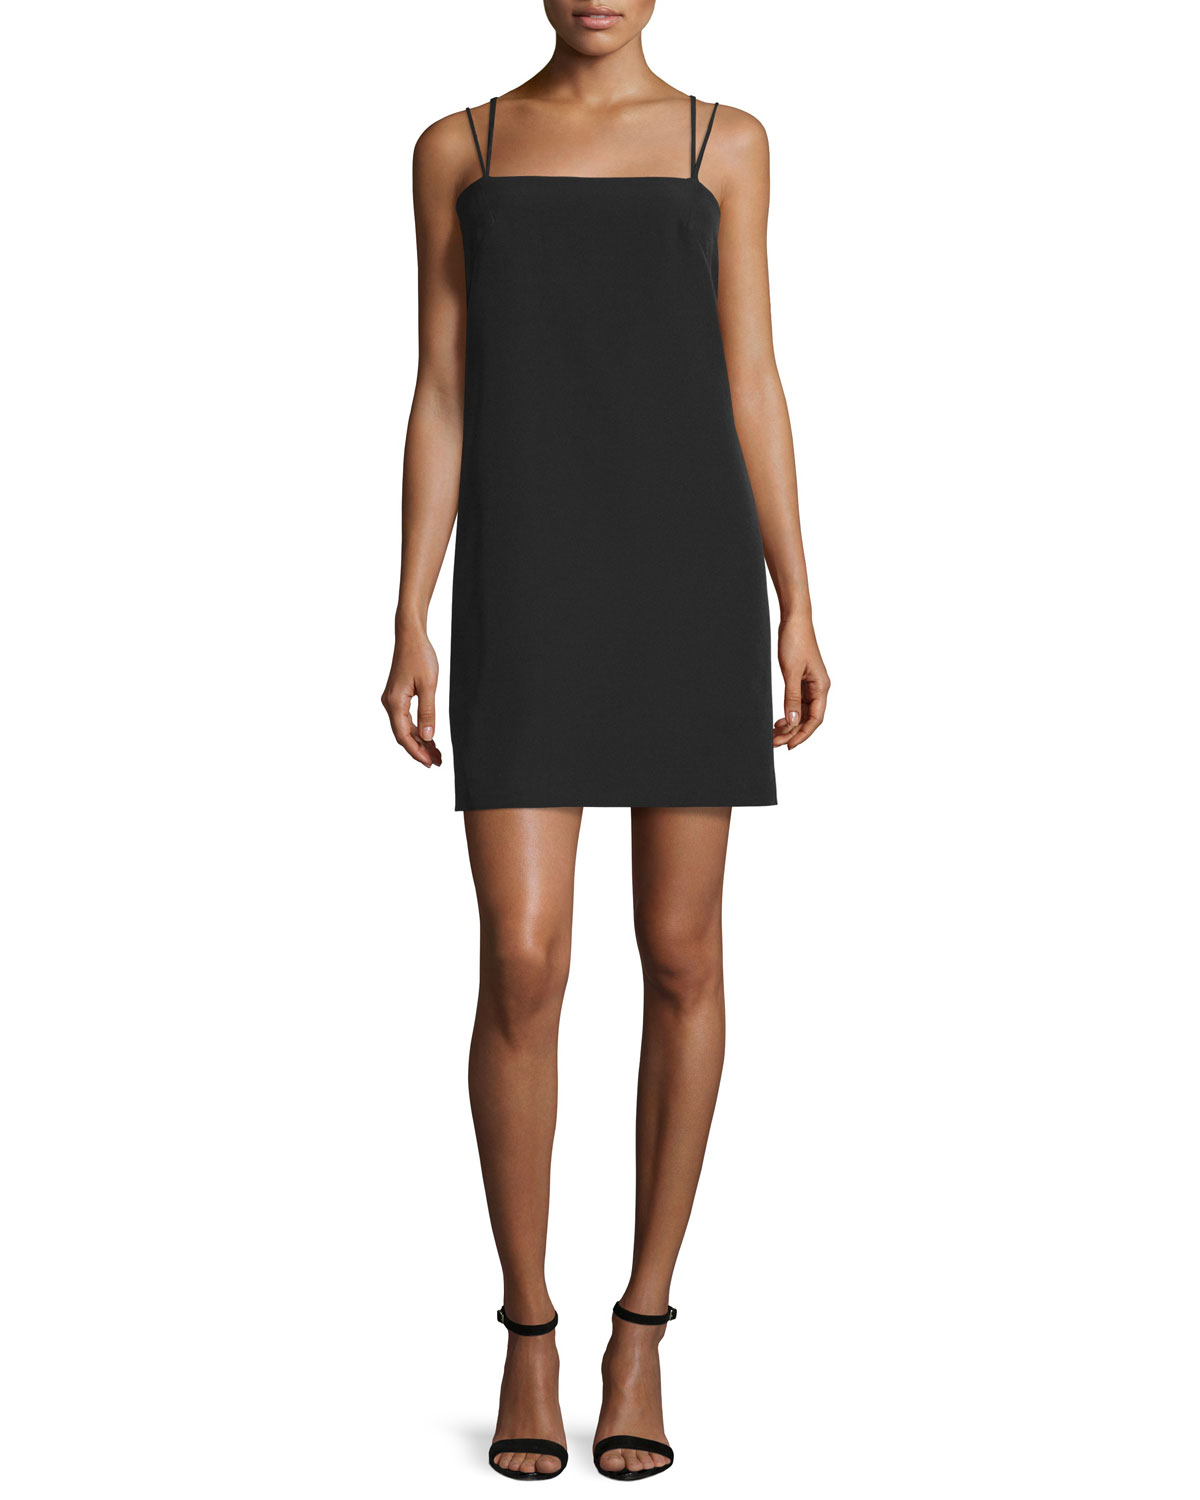 Strappy Seamed Shift Dress, Black, Size: 0 - Milly